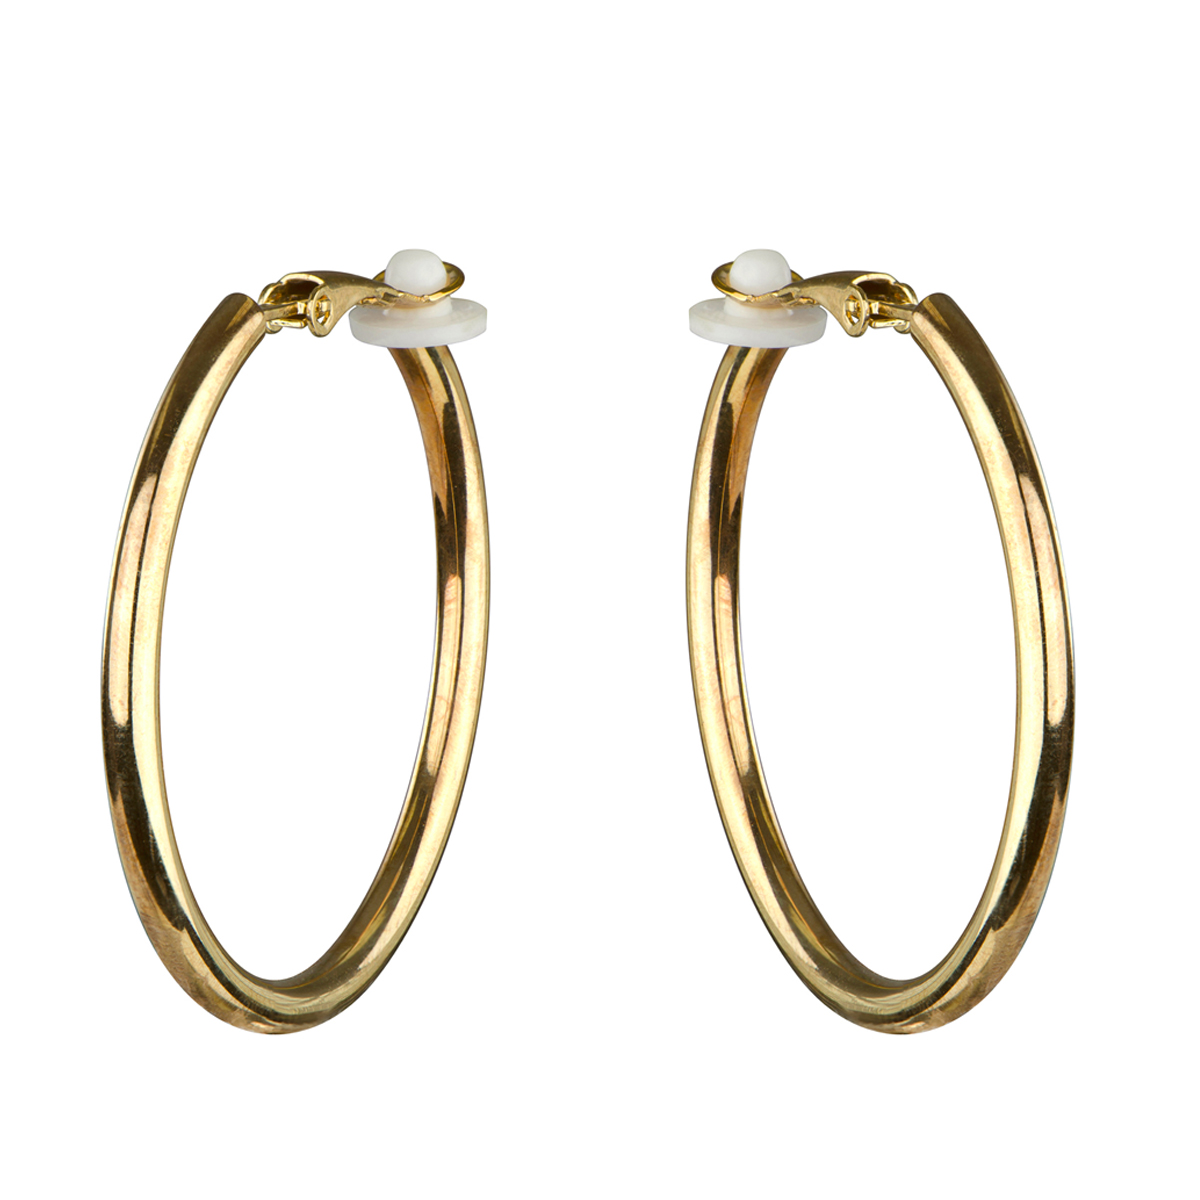 Charline's Clipon Goldtone Hoop Earrings  35mm